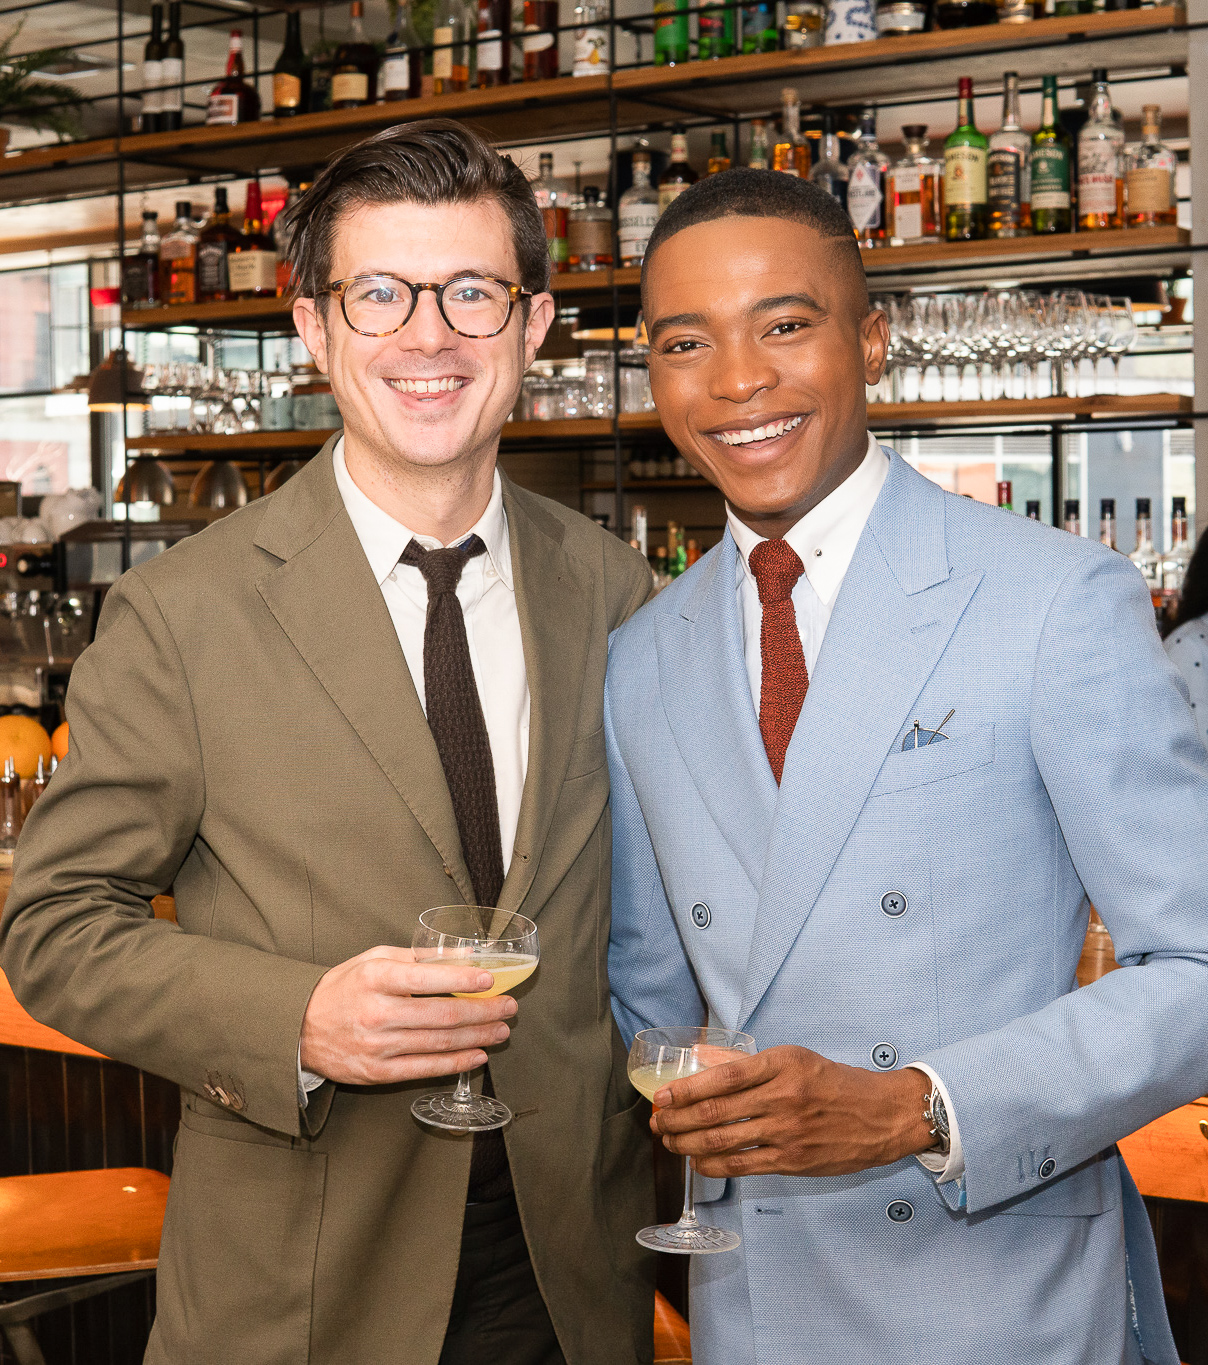 Timothy Jeffreys and Igee Okafor attend the BOND OFFICIAL x InStitchu Brunch at Harold's on Saturday, March 23rd, 2019. Photography by, Inexora Media.